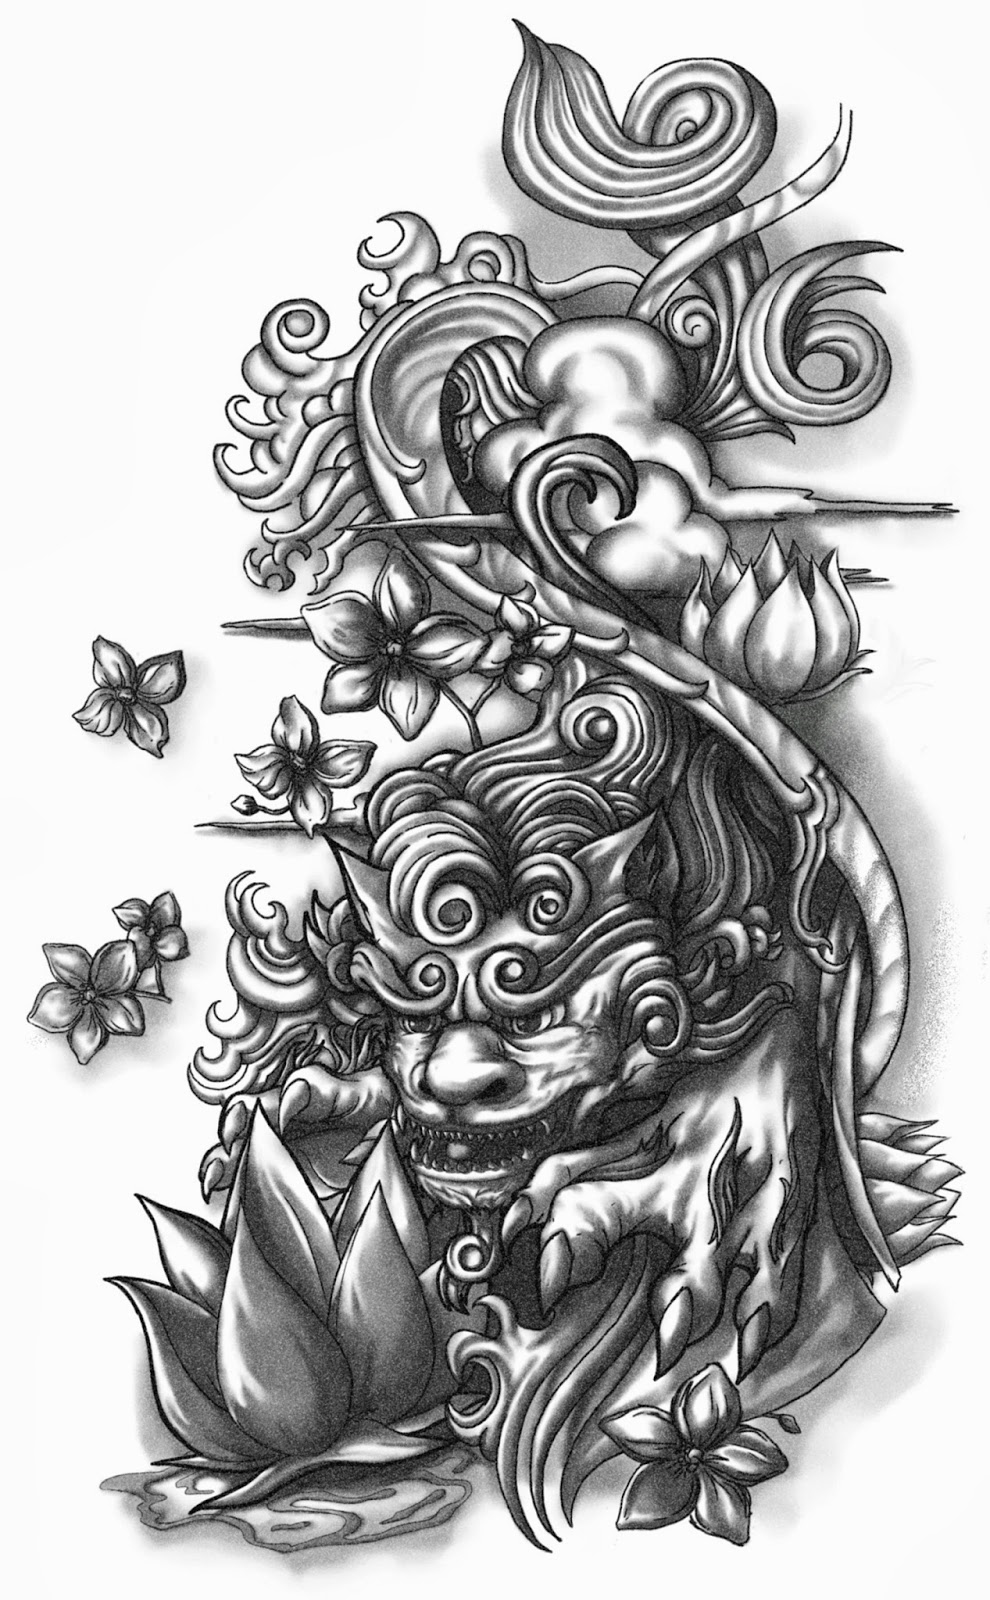 Tattoo sleeve designs black and white drawings, tattoo ...